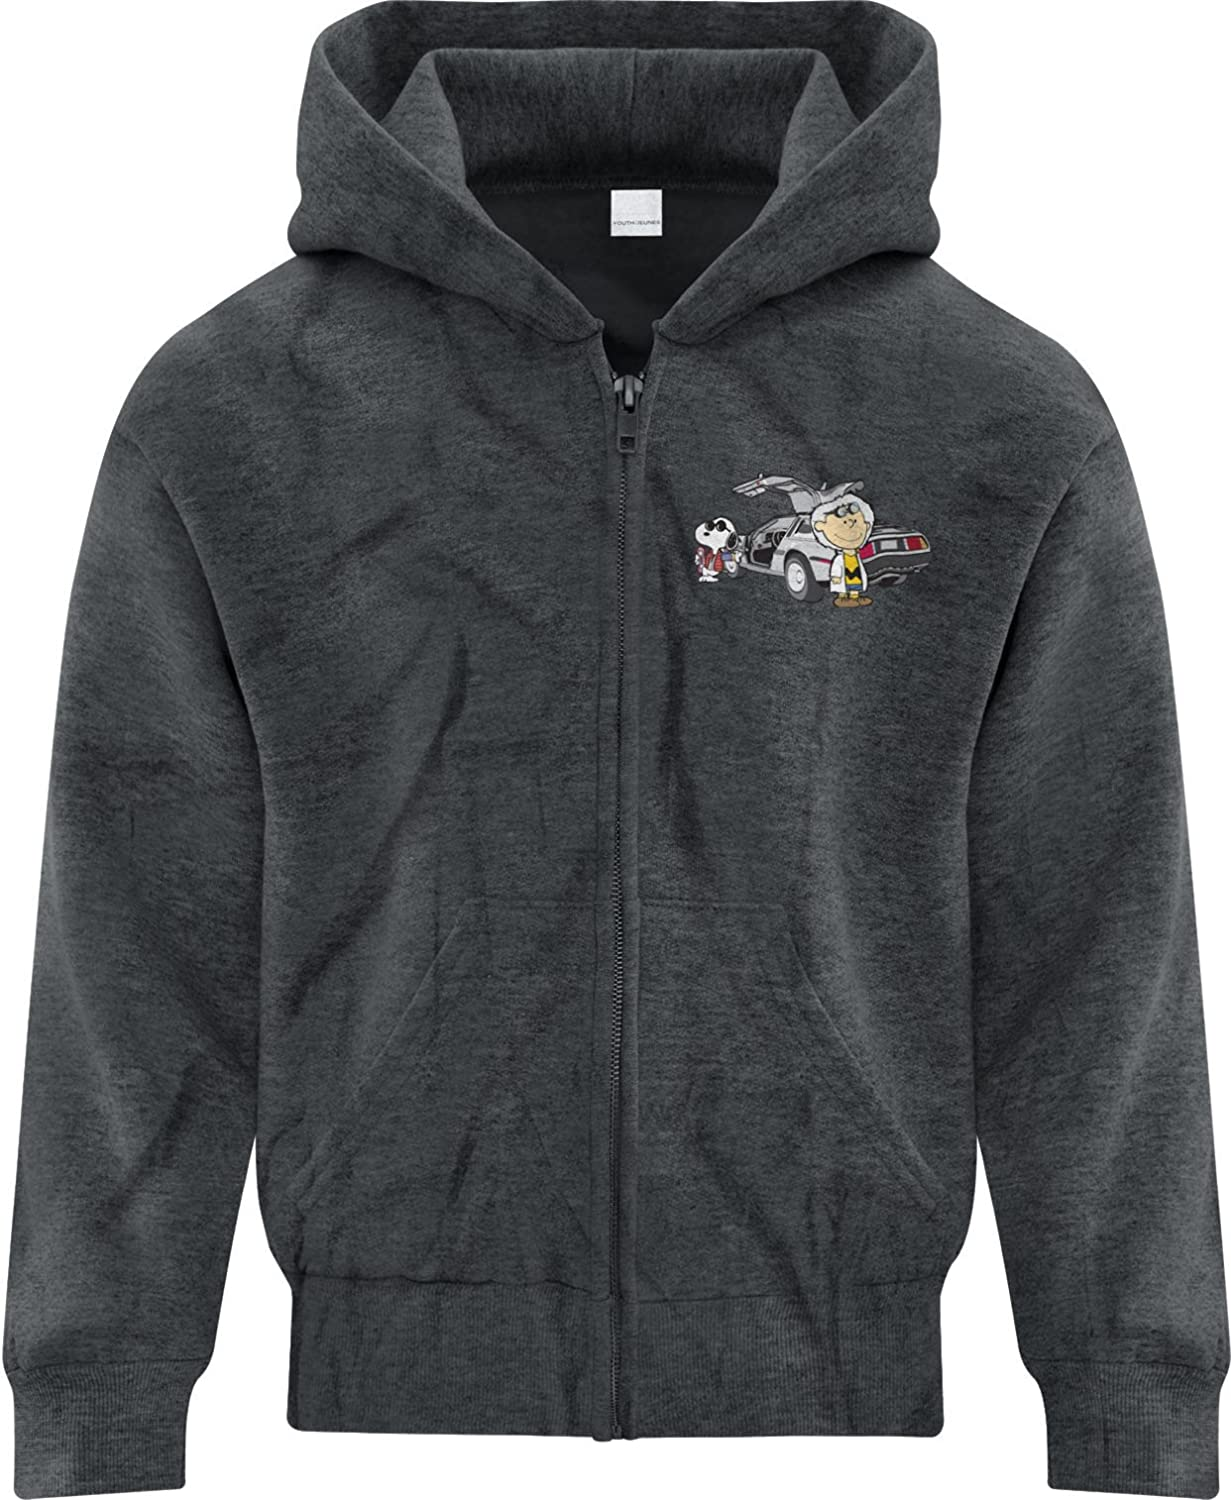 BSW Youth Boys Back to The Future Charlie Brown Snoopy Zip Hoodie